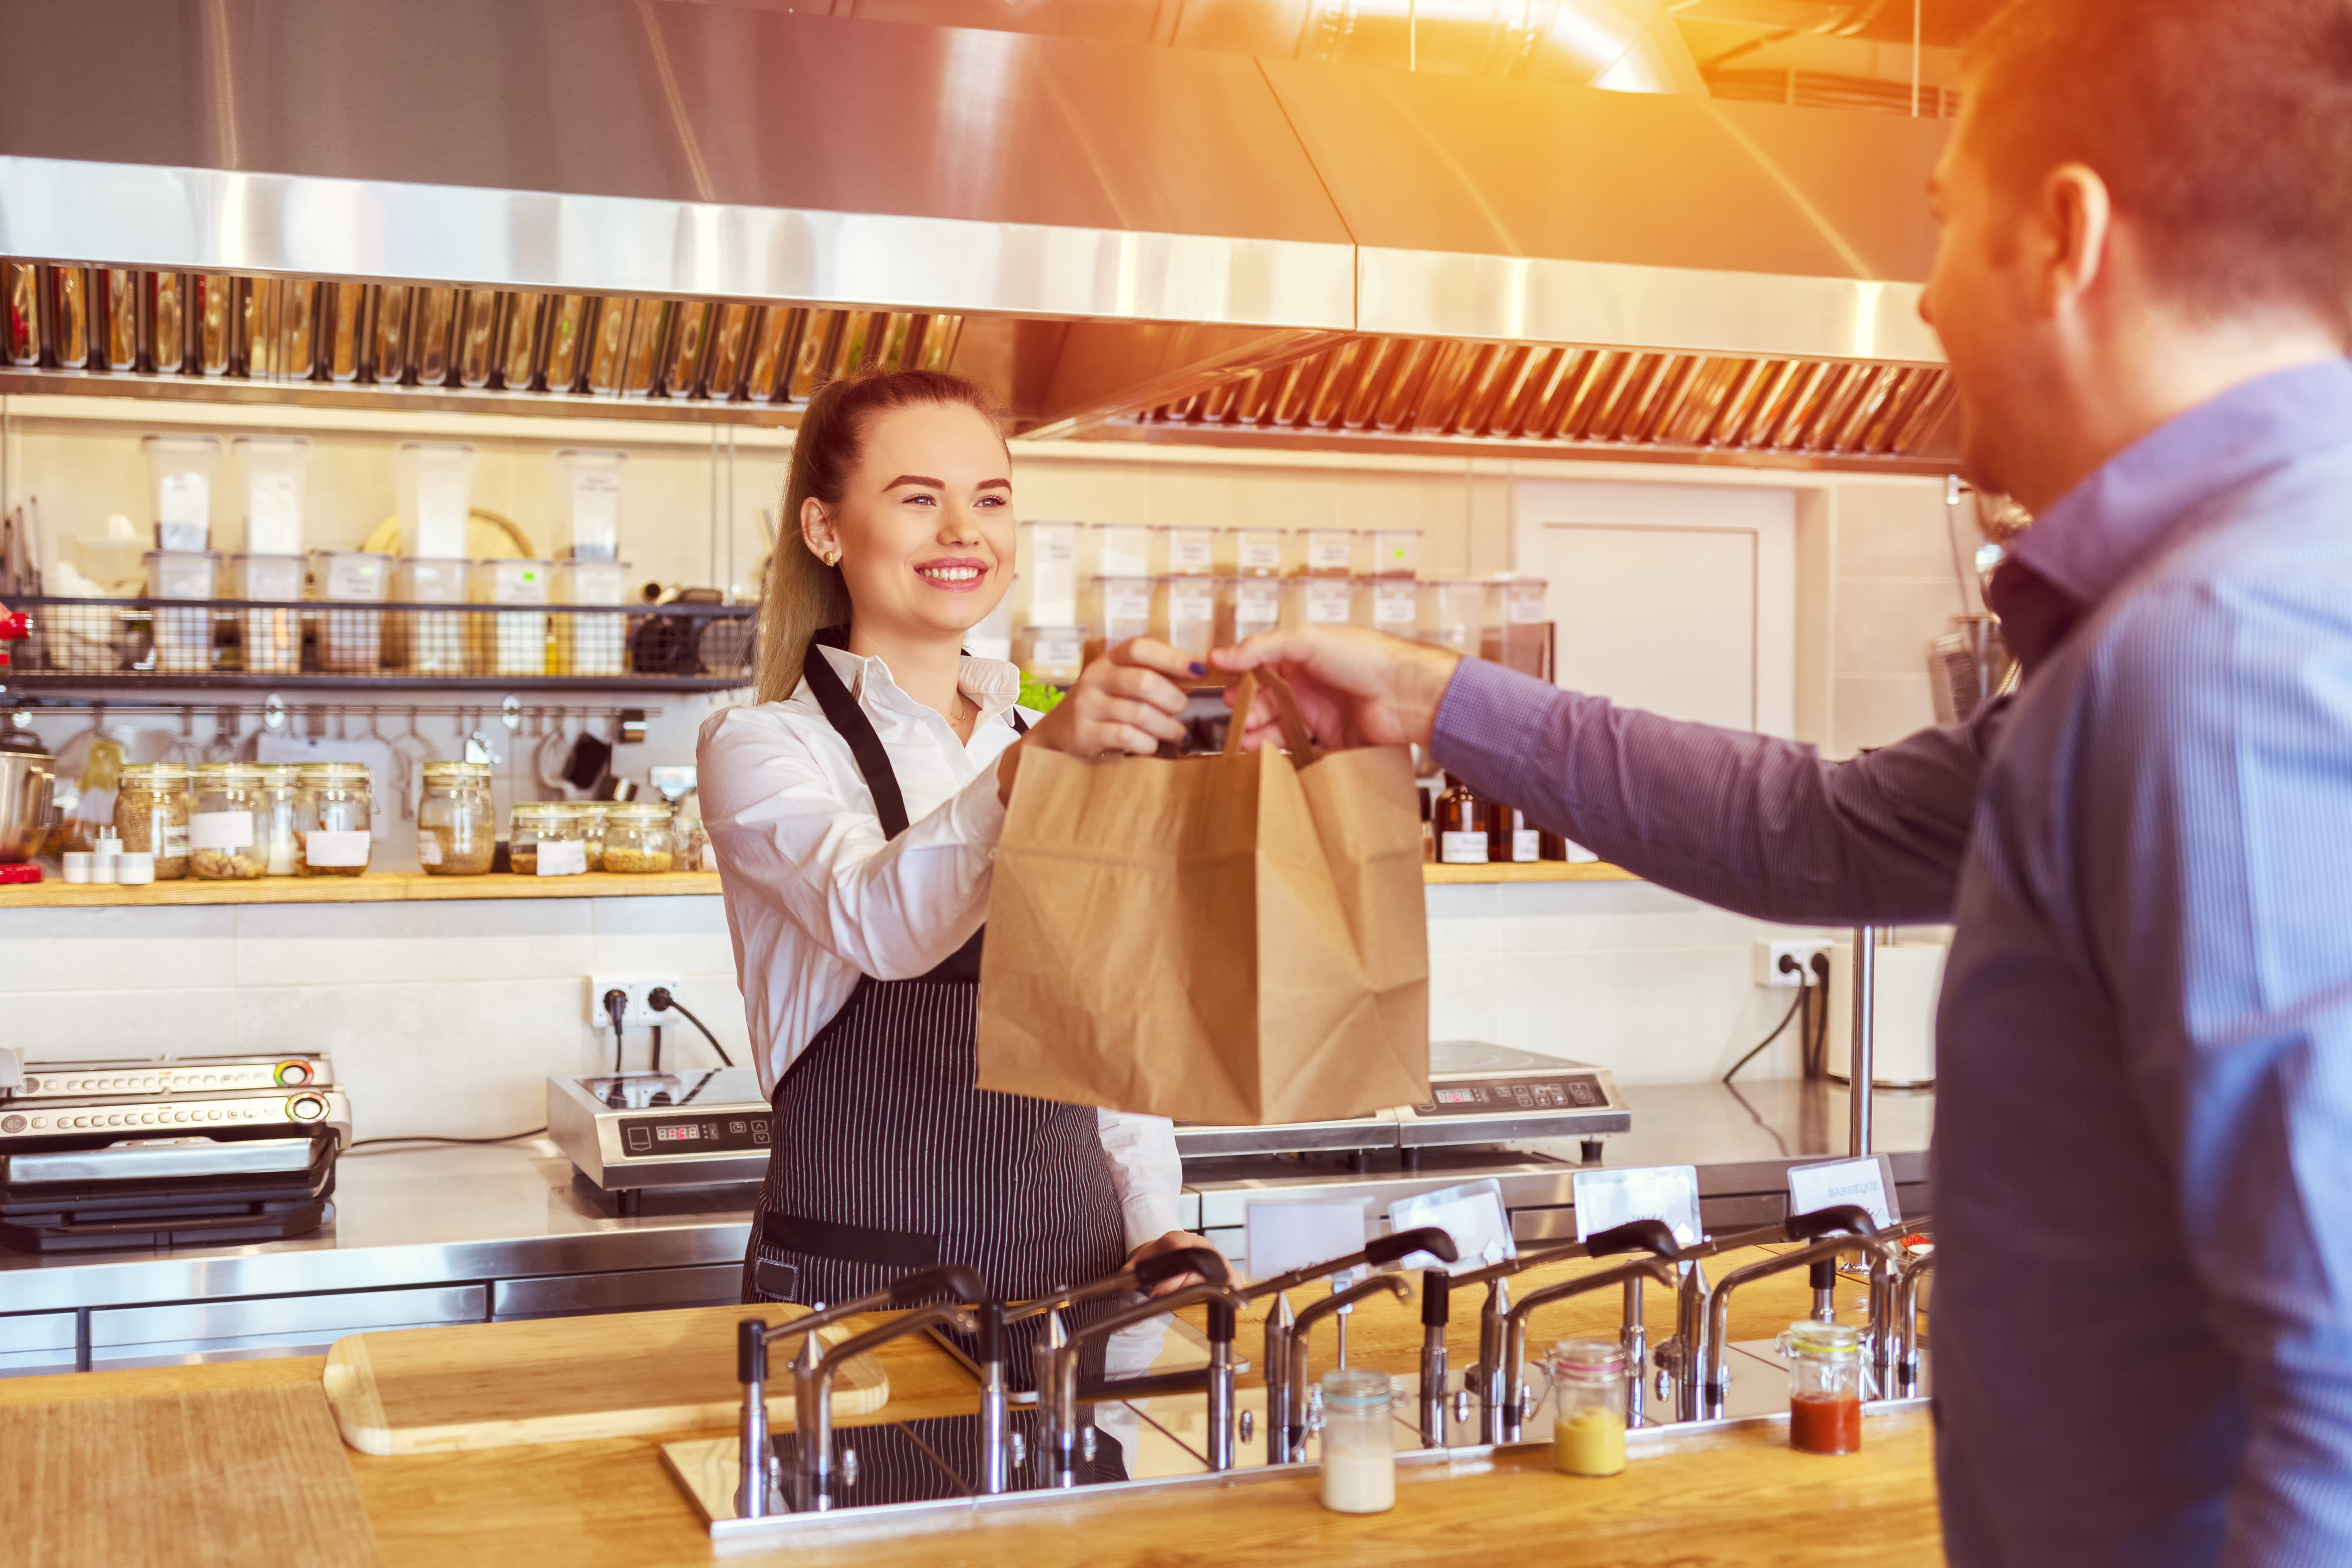 How your Uber Eats and Afterpay habits could derail your home loan application